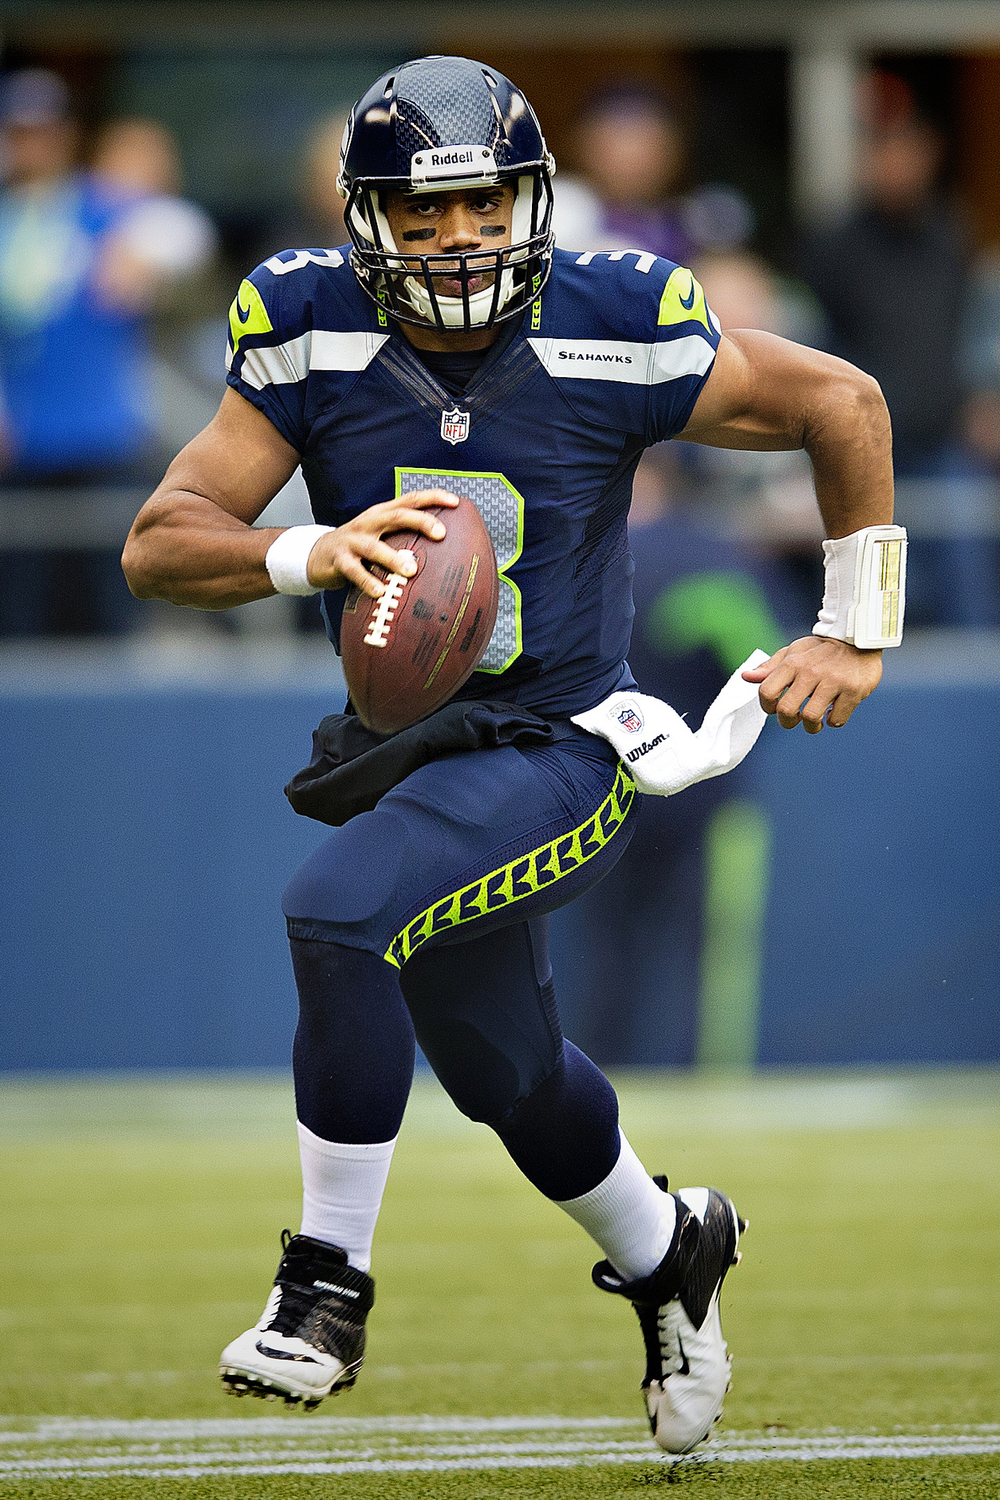 Russell Wilson, quarterback of the Seattle Seahawks, in action against the Minnesota Vikings in 2012. The Seahawks have great taste in colors, no? Photograph by Larry Maurer.